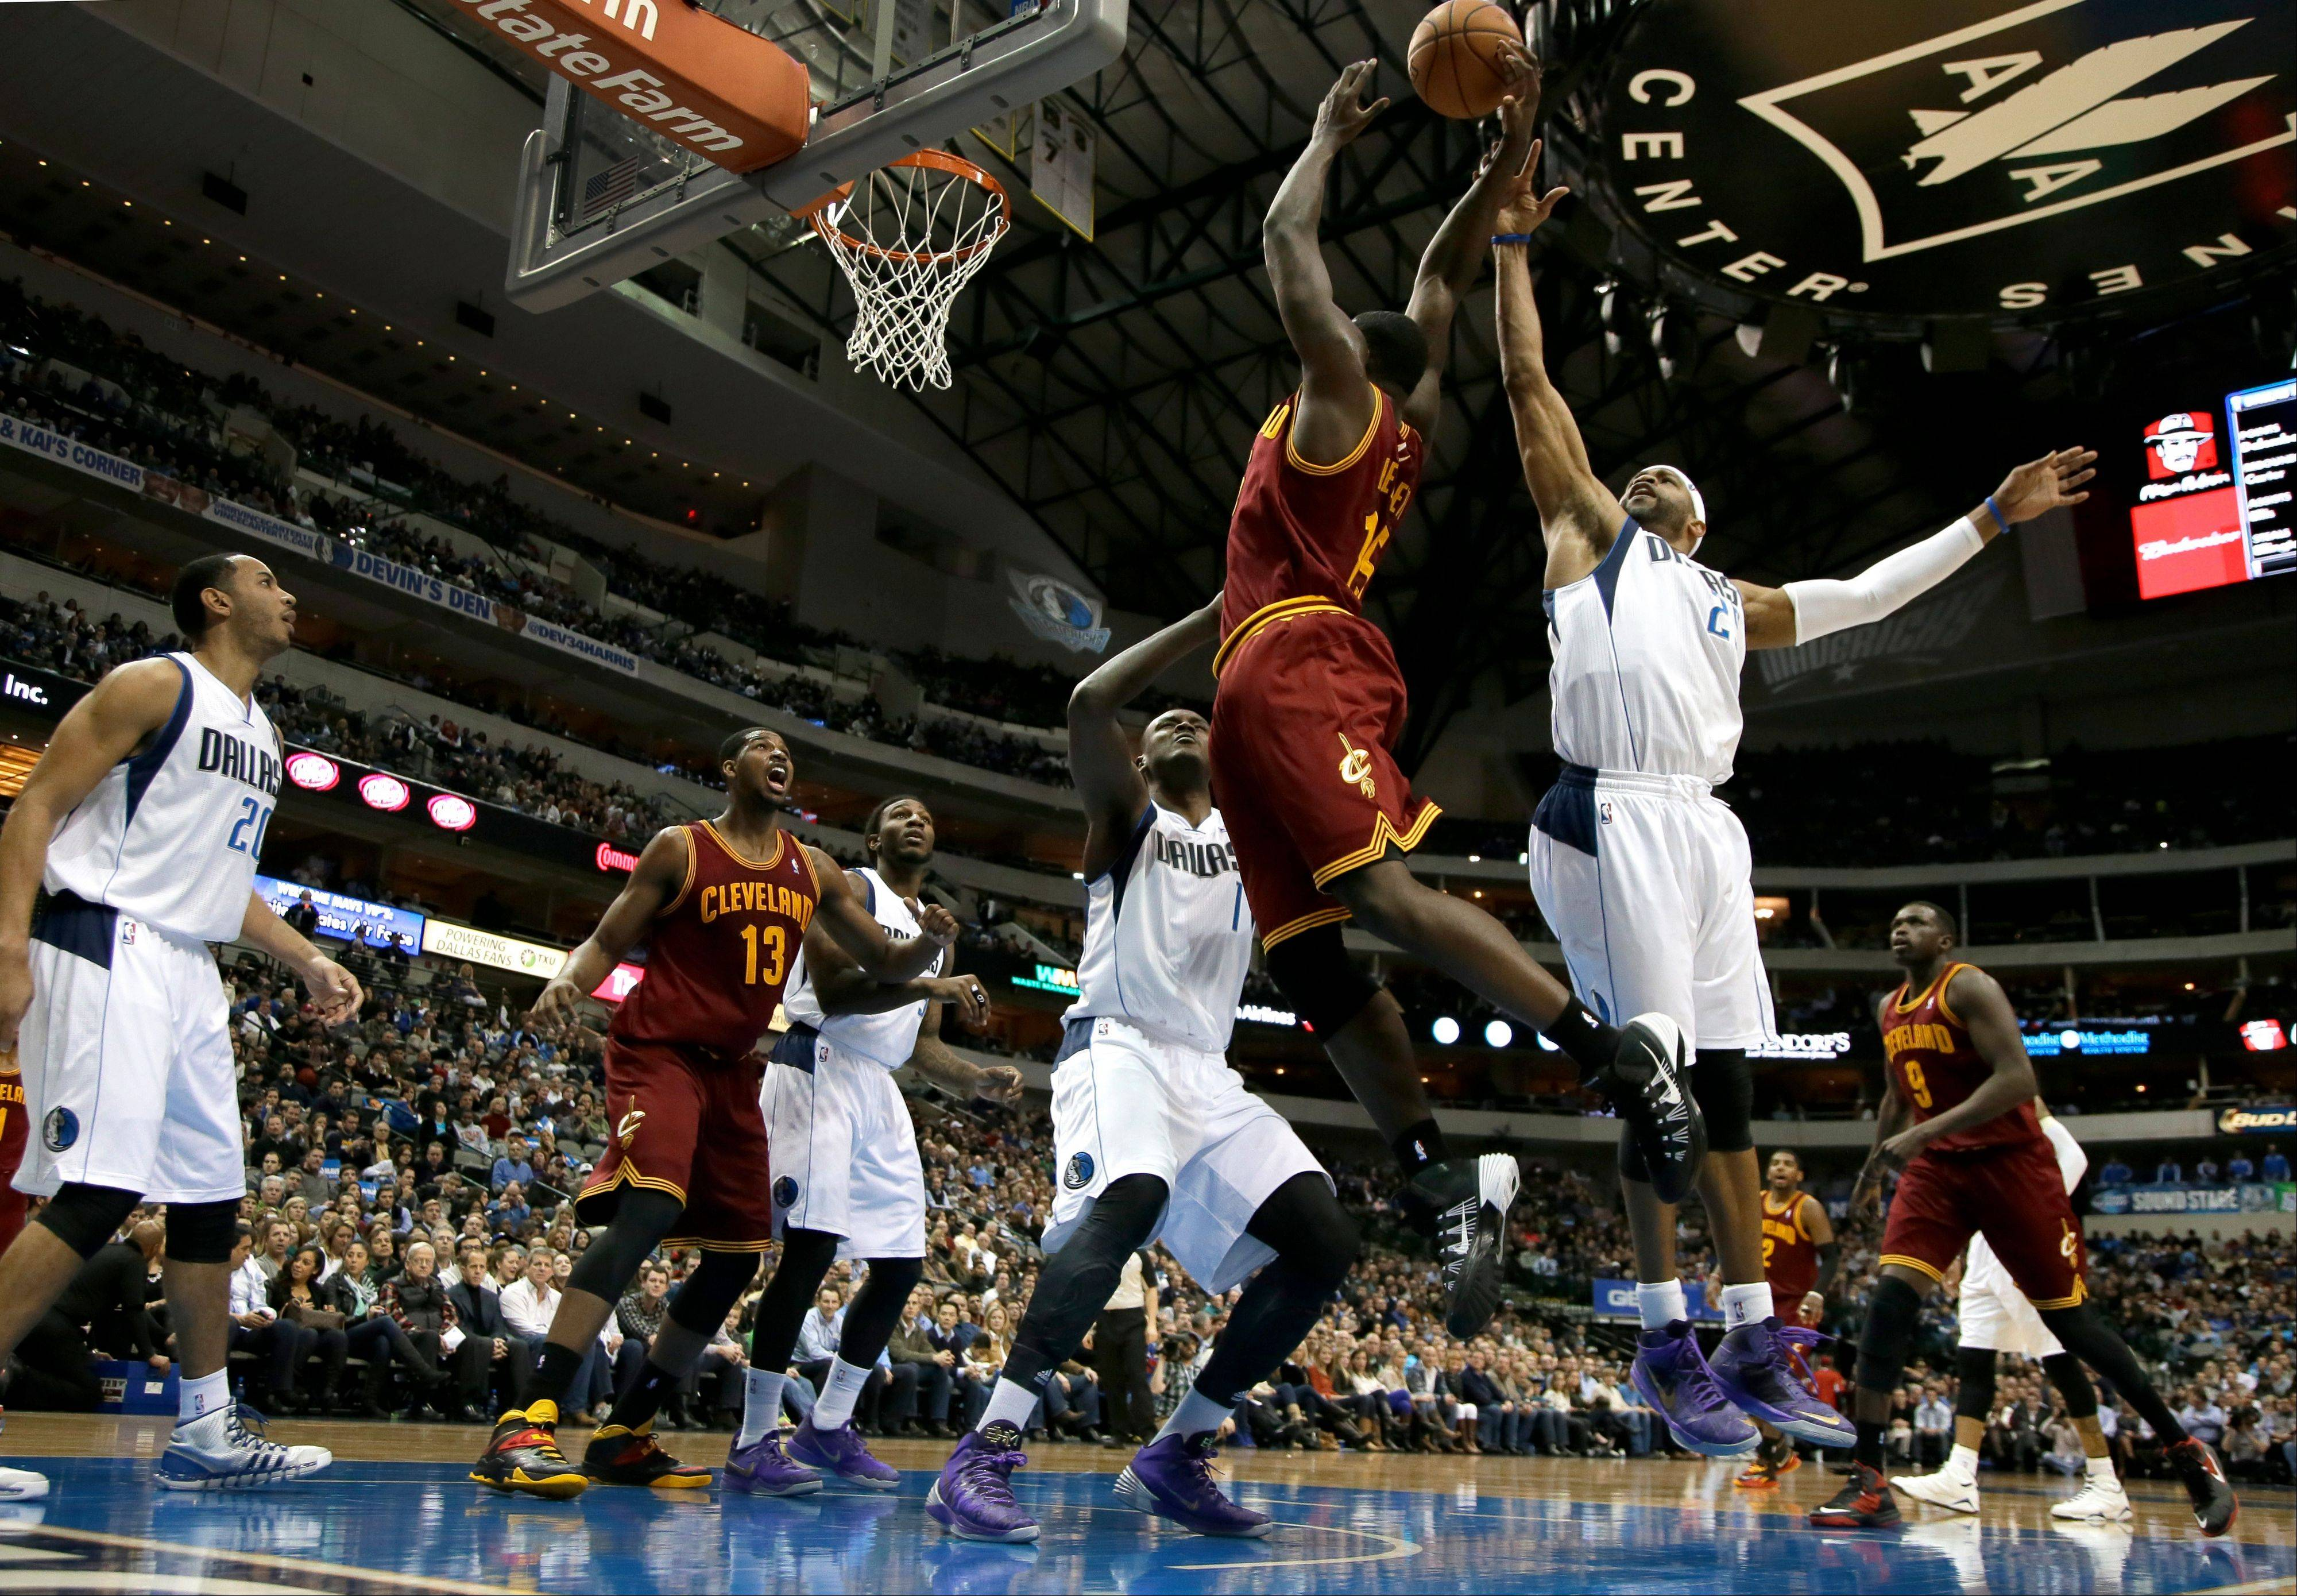 Cleveland Cavaliers forward Anthony Bennett (15) has the ball slapped away on a dunk attempt by Dallas Mavericks' Vince Carter (25) as Devin Harris (20), Tristan Thompson (13), Jae Crowder, center rear, Samuel Dalembert (1) of Haiti and Luol Deng (9) of Sudan watch in the first half of an NBA basketball game, Monday, Feb. 3, 2014, in Dallas.